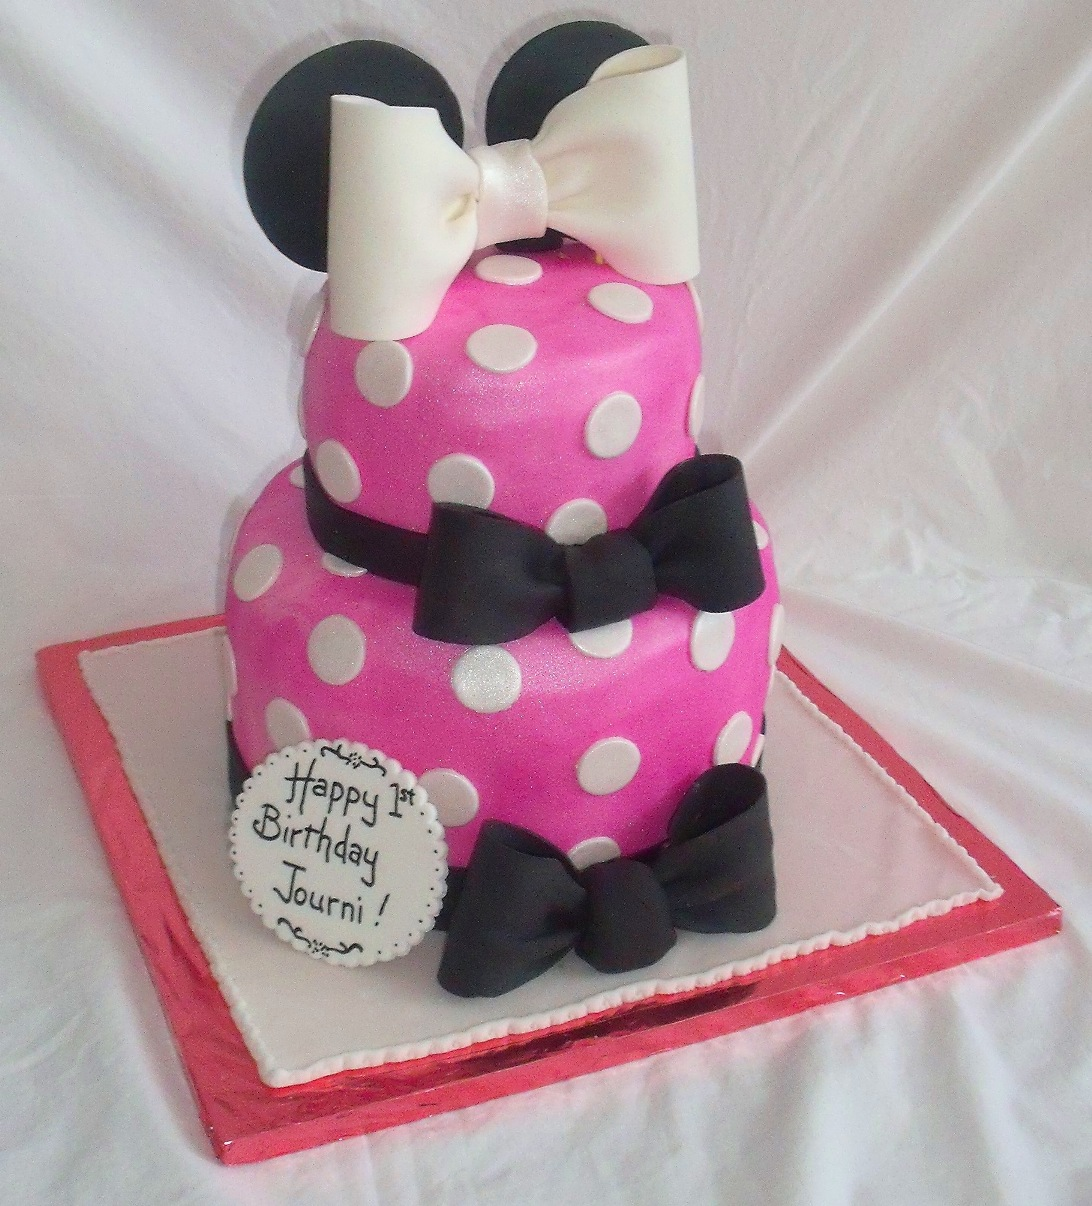 Minnie Mouse Pink Fondant Birthday Cake For Girl View 1